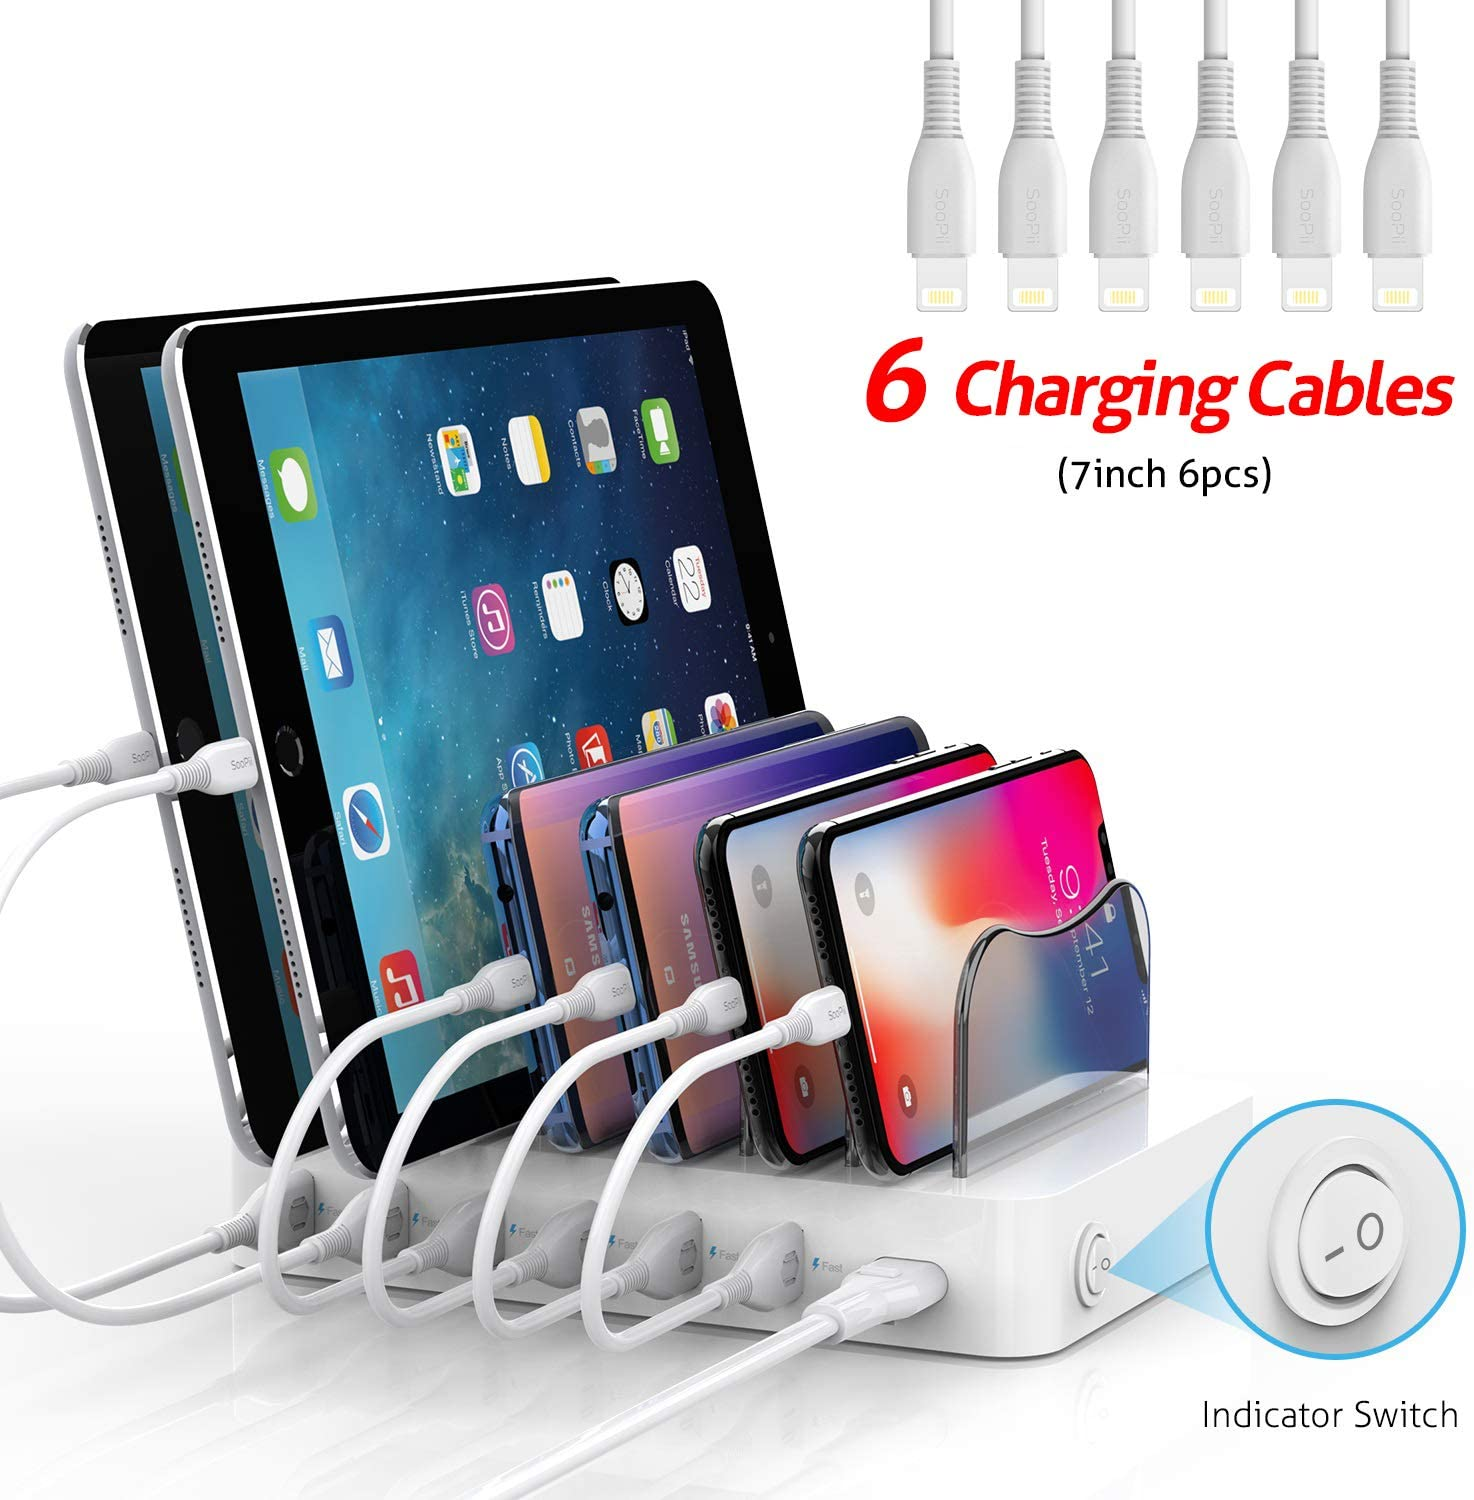 SooPii Premium 6-Port USB Charging Station for Multiple Devices, 6 Charging Cables Included, Compatible with Apple iPad iPhone iPod, for Phones, Tablets, and Other Electronics, White